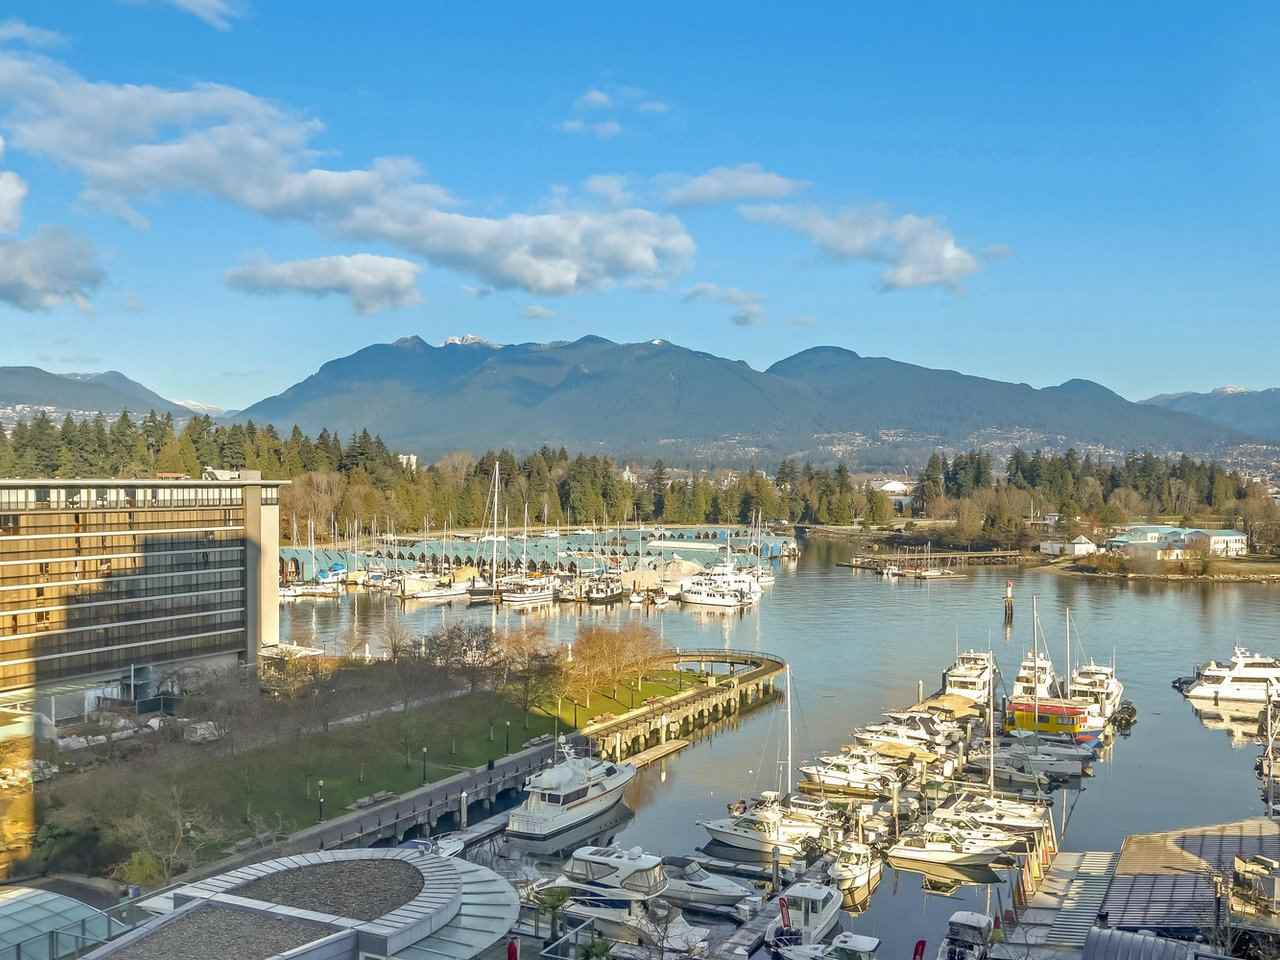 1101 535 NICOLA STREET - Coal Harbour Apartment/Condo for sale, 2 Bedrooms (R2331656) - #2